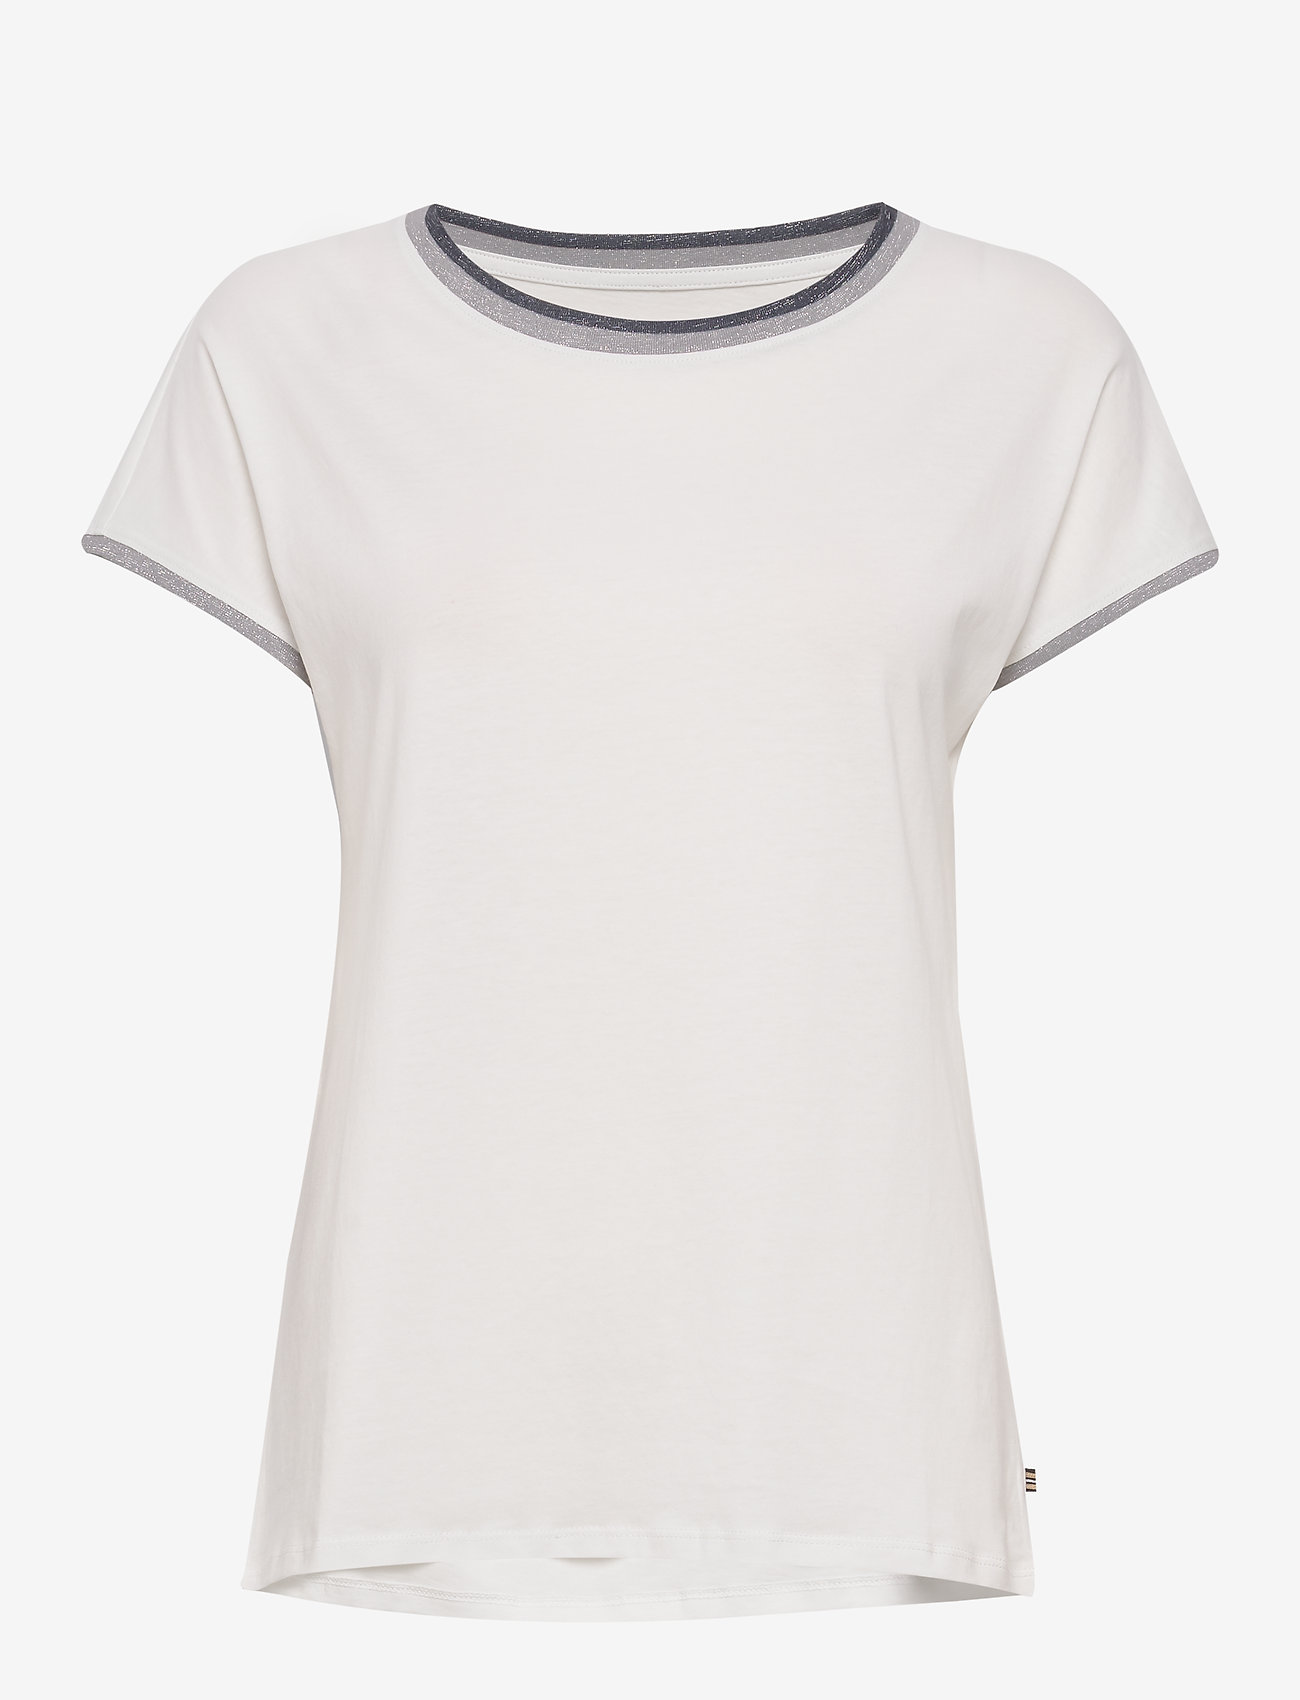 Esprit Casual - T-Shirts - t-shirts - off white - 0